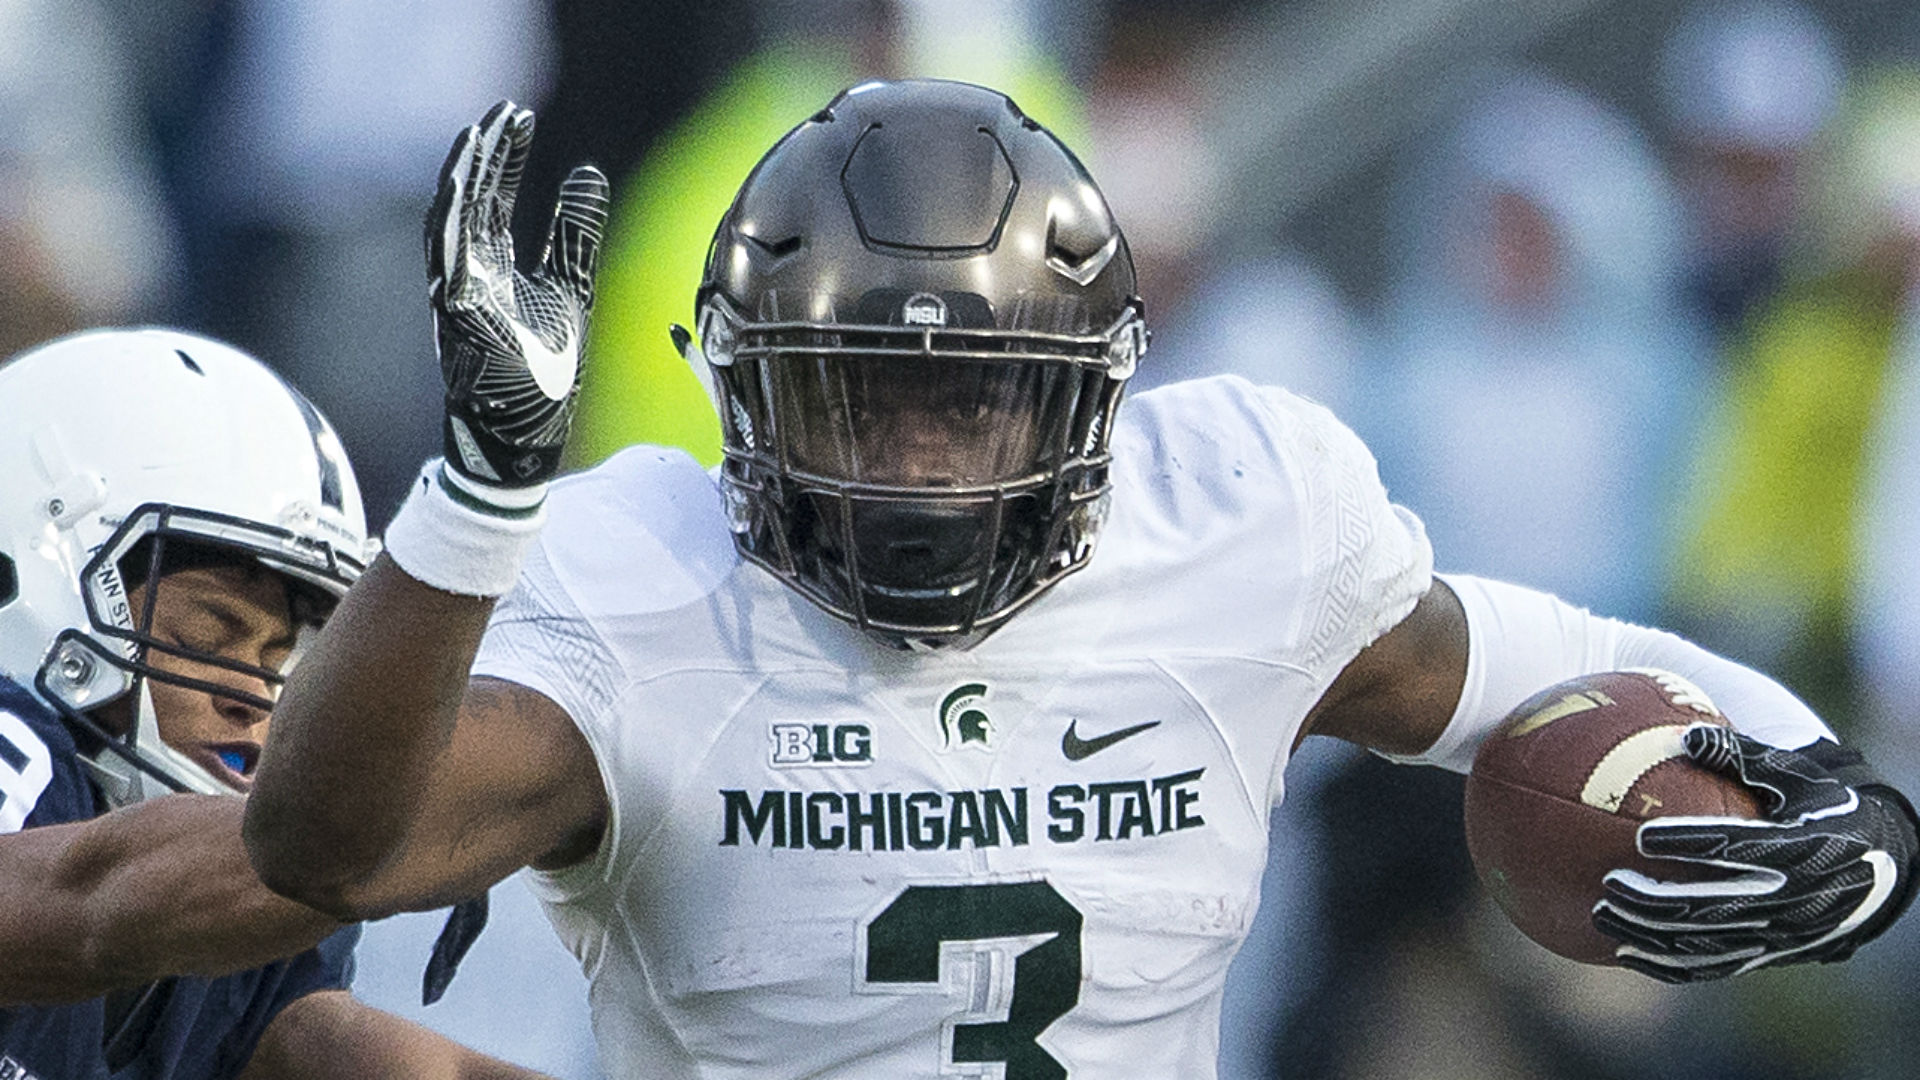 Life in the fast lane: Michigan State's Scott arrested again